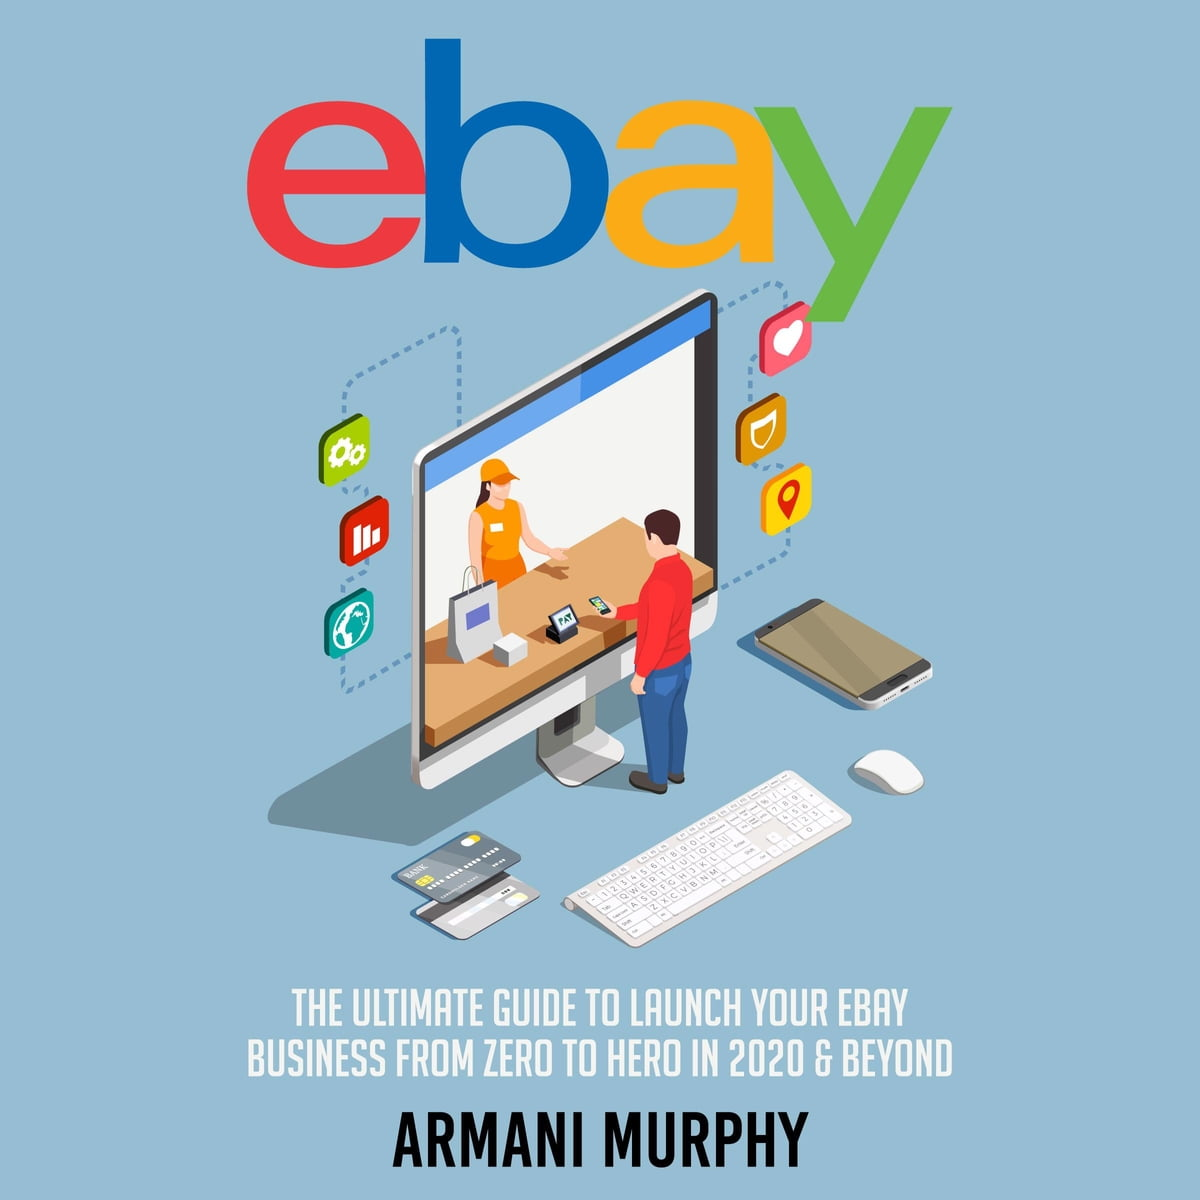 Ebay The Ultimate Guide To Launch Your Ebay Business From Zero To Hero In 2020 Beyond Audiobook By Armani Murphy 9781518917943 Rakuten Kobo United States